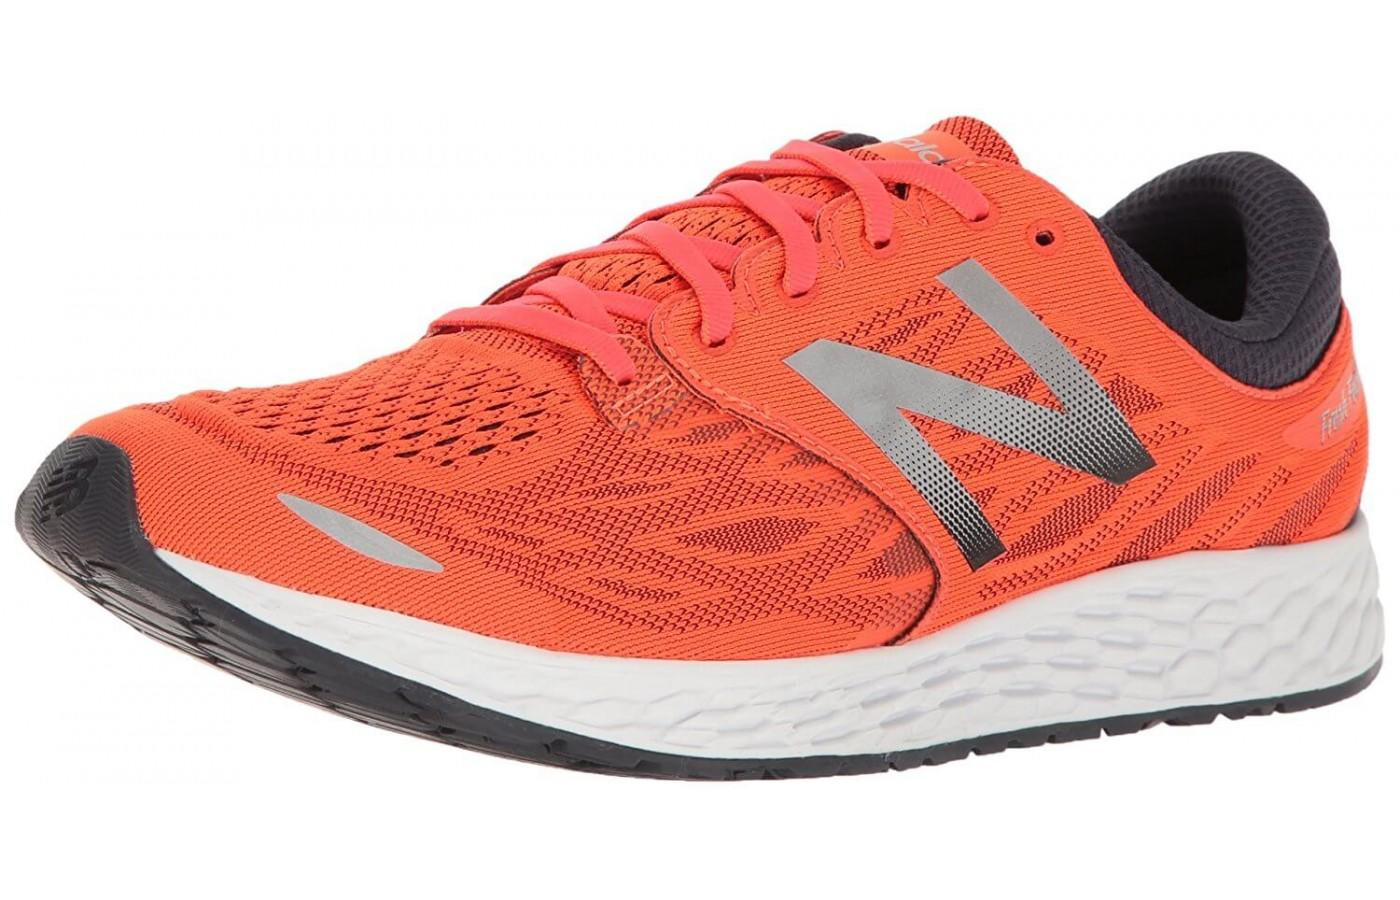 The redesigned Zante 3.0 is a favorite among runners.